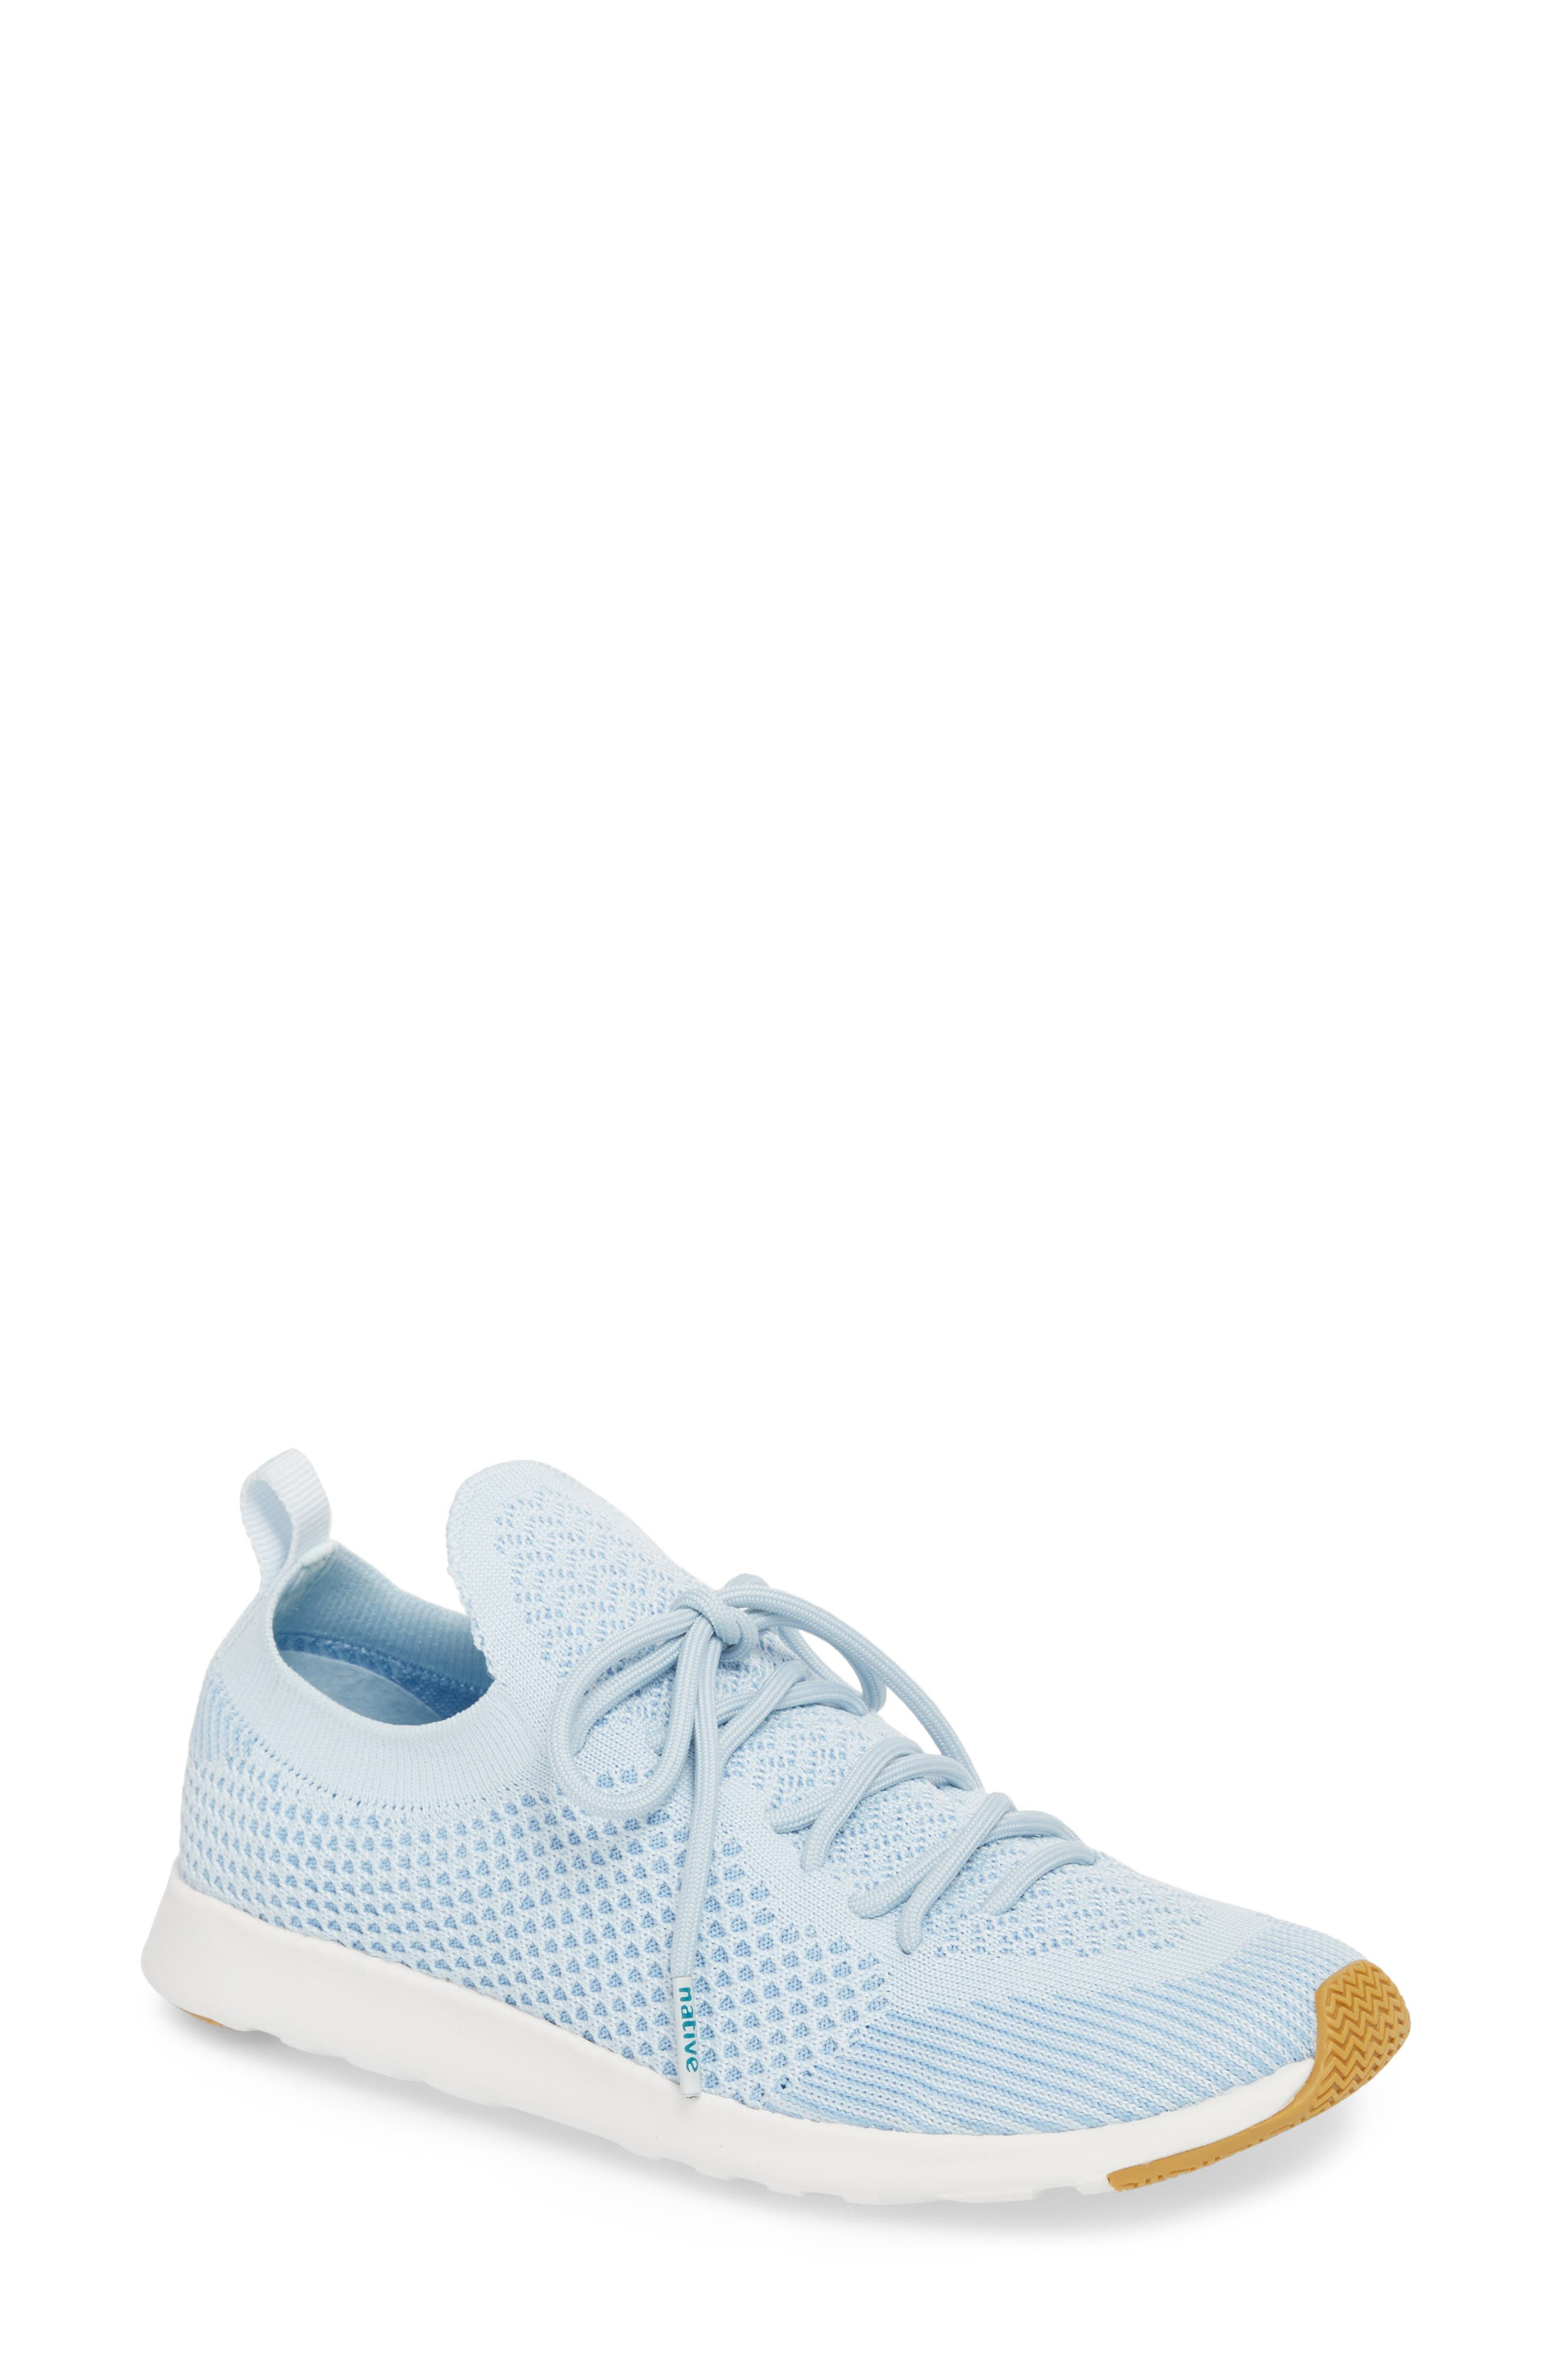 AP Mercury Liteknit Sneaker,                             Main thumbnail 1, color,                             AIR BLUE/ SHELL WHITE/ NATURAL